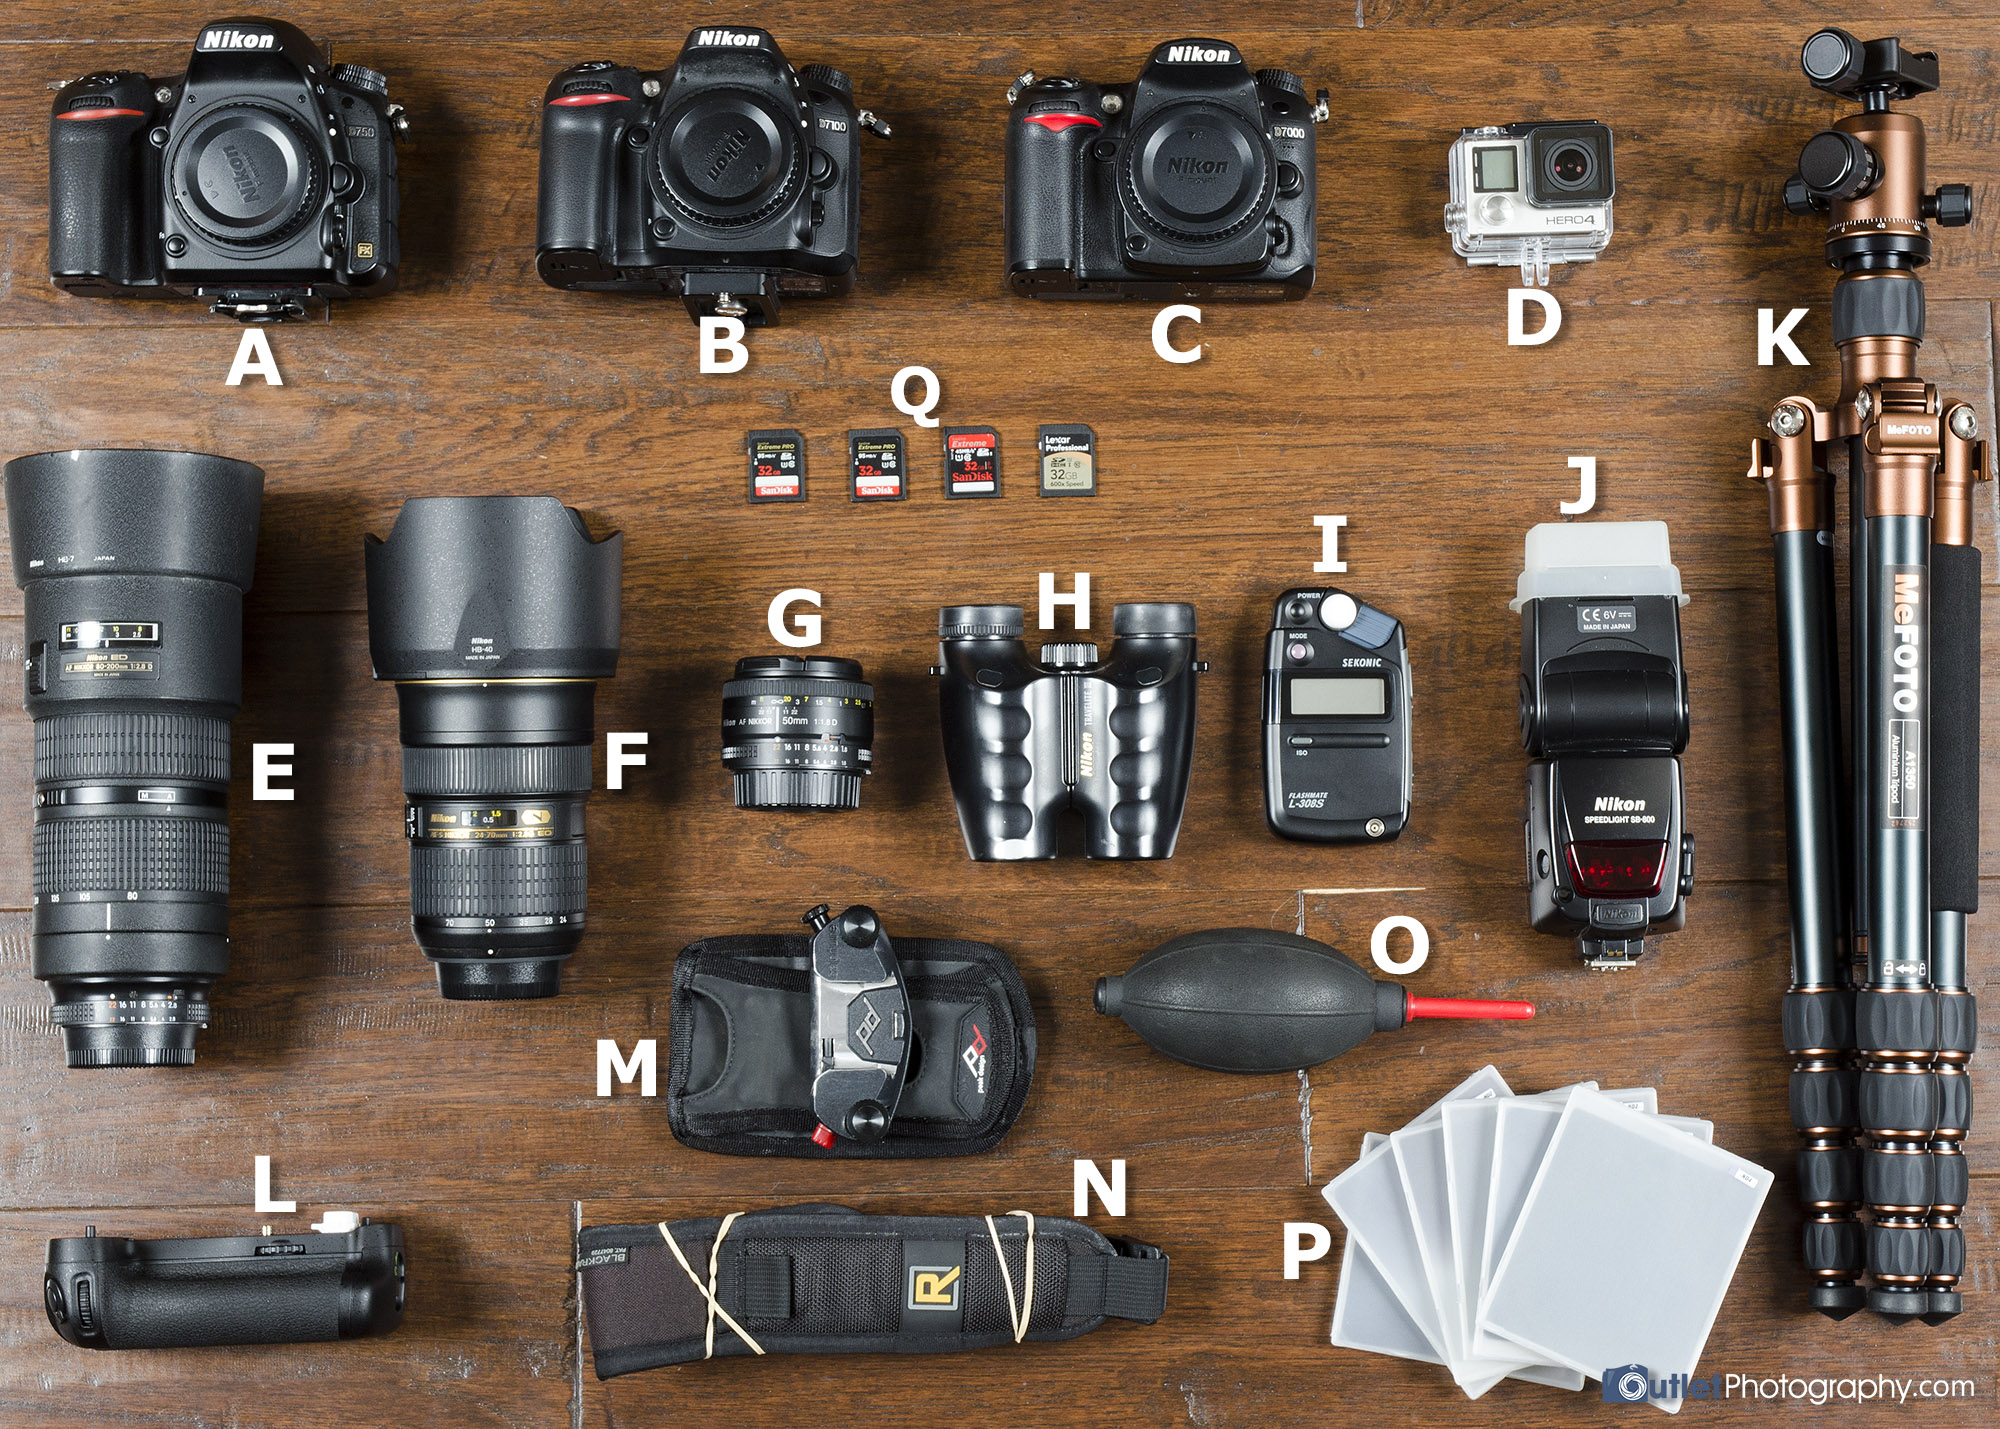 camera gear equipment bag photographers updated september basis daily